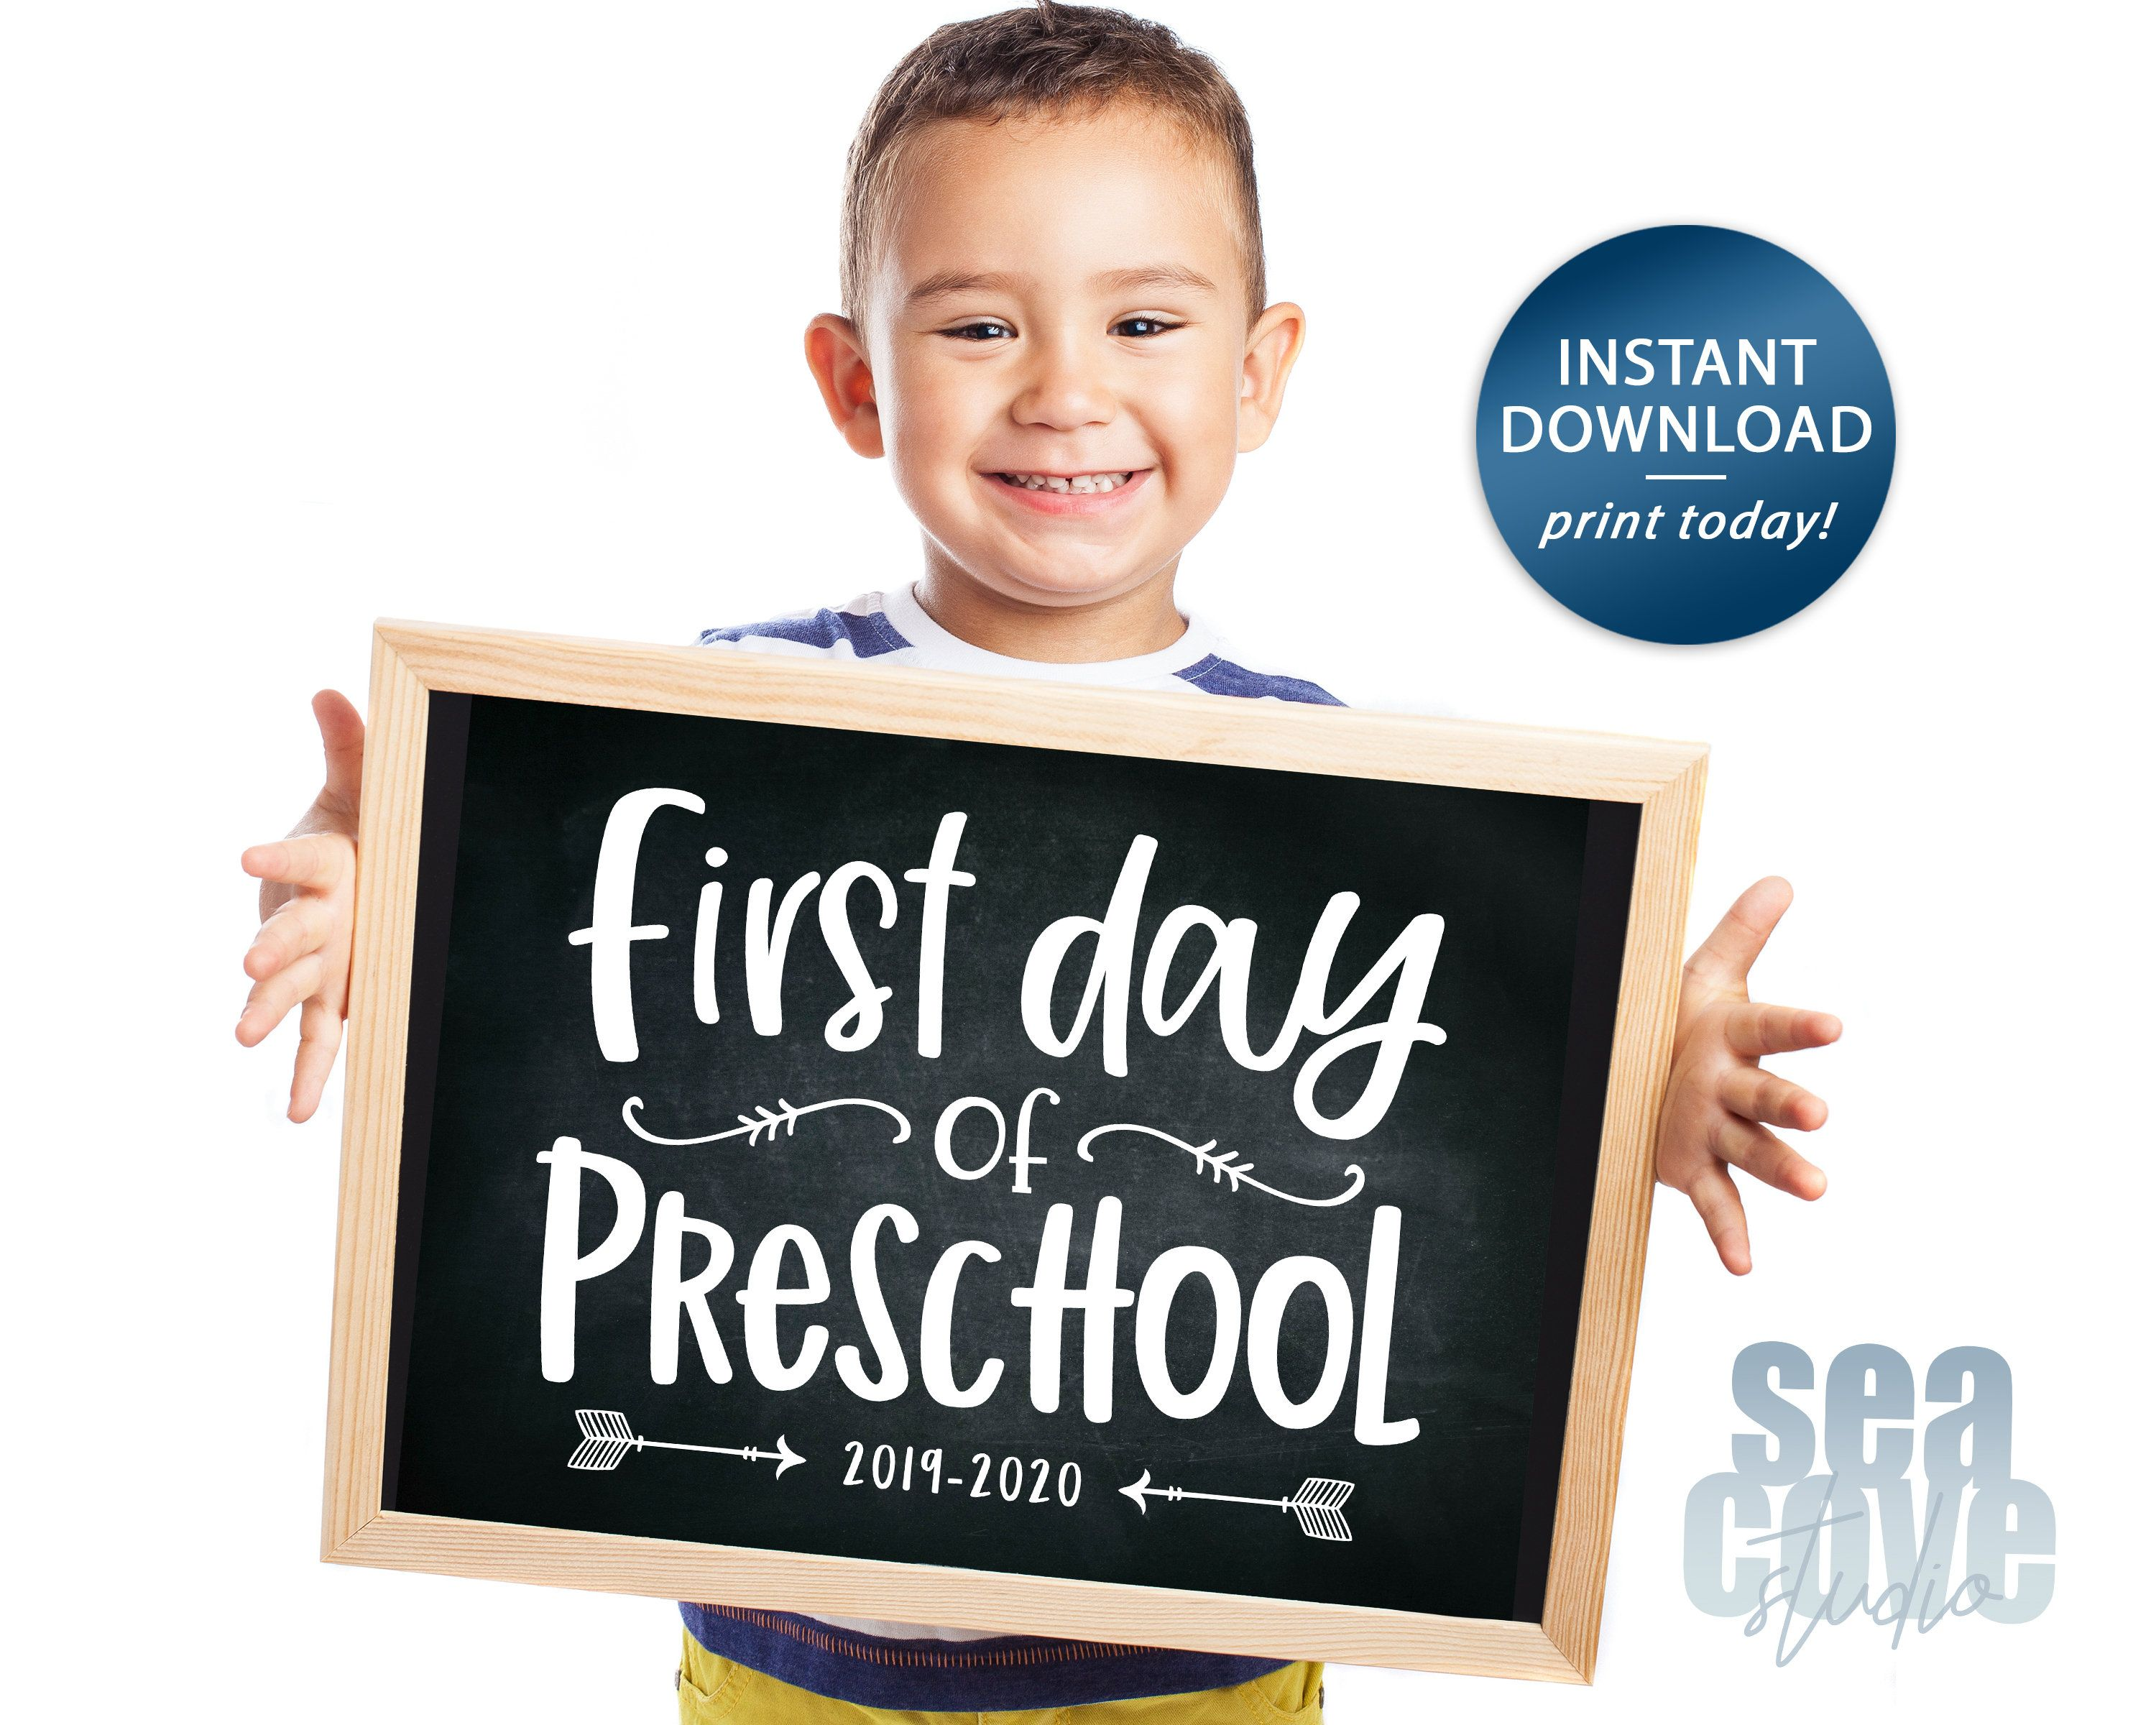 First Day of PreSchool Sign, Back to School Sign, First Day of School Sign, First Day of School Chalkboard Sign, 2019-2020, Instant Download